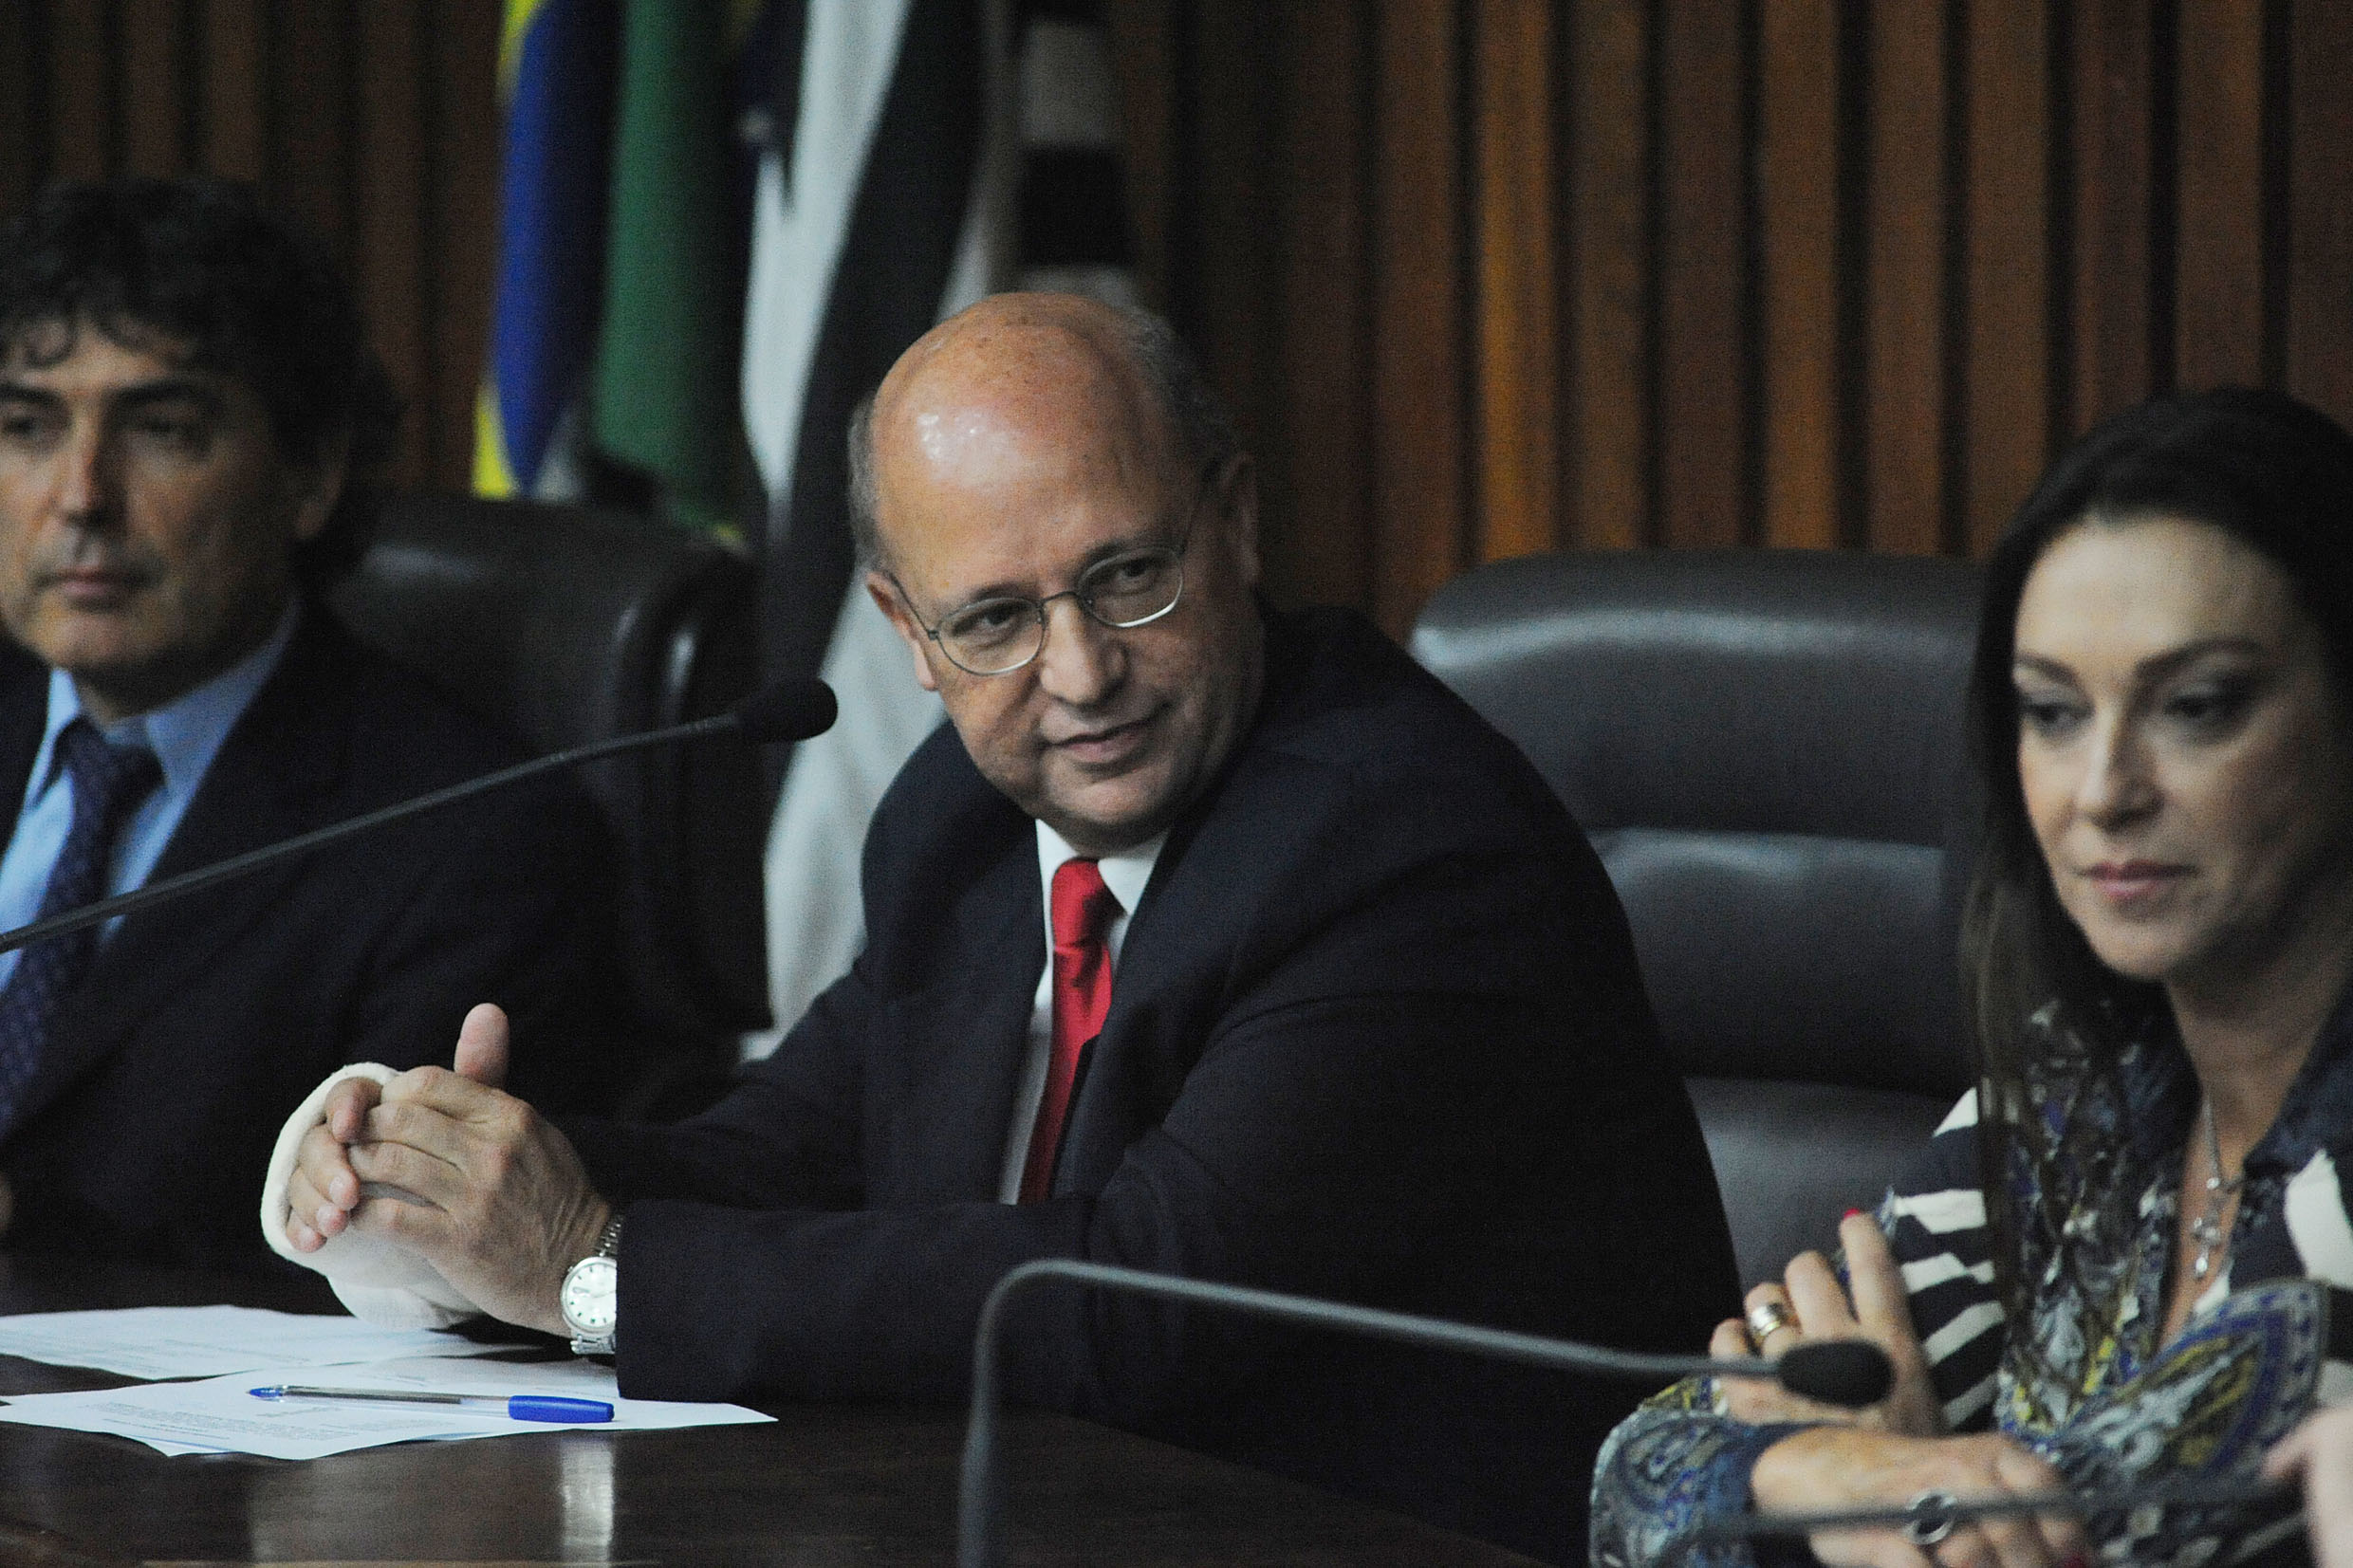 Carlos Giannazi, Carlos Neder e Rita Passos<a style='float:right' href='https://www3.al.sp.gov.br/repositorio/noticia/N-05-2014/fg161585.jpg' target=_blank><img src='/_img/material-file-download-white.png' width='14px' alt='Clique para baixar a imagem'></a>